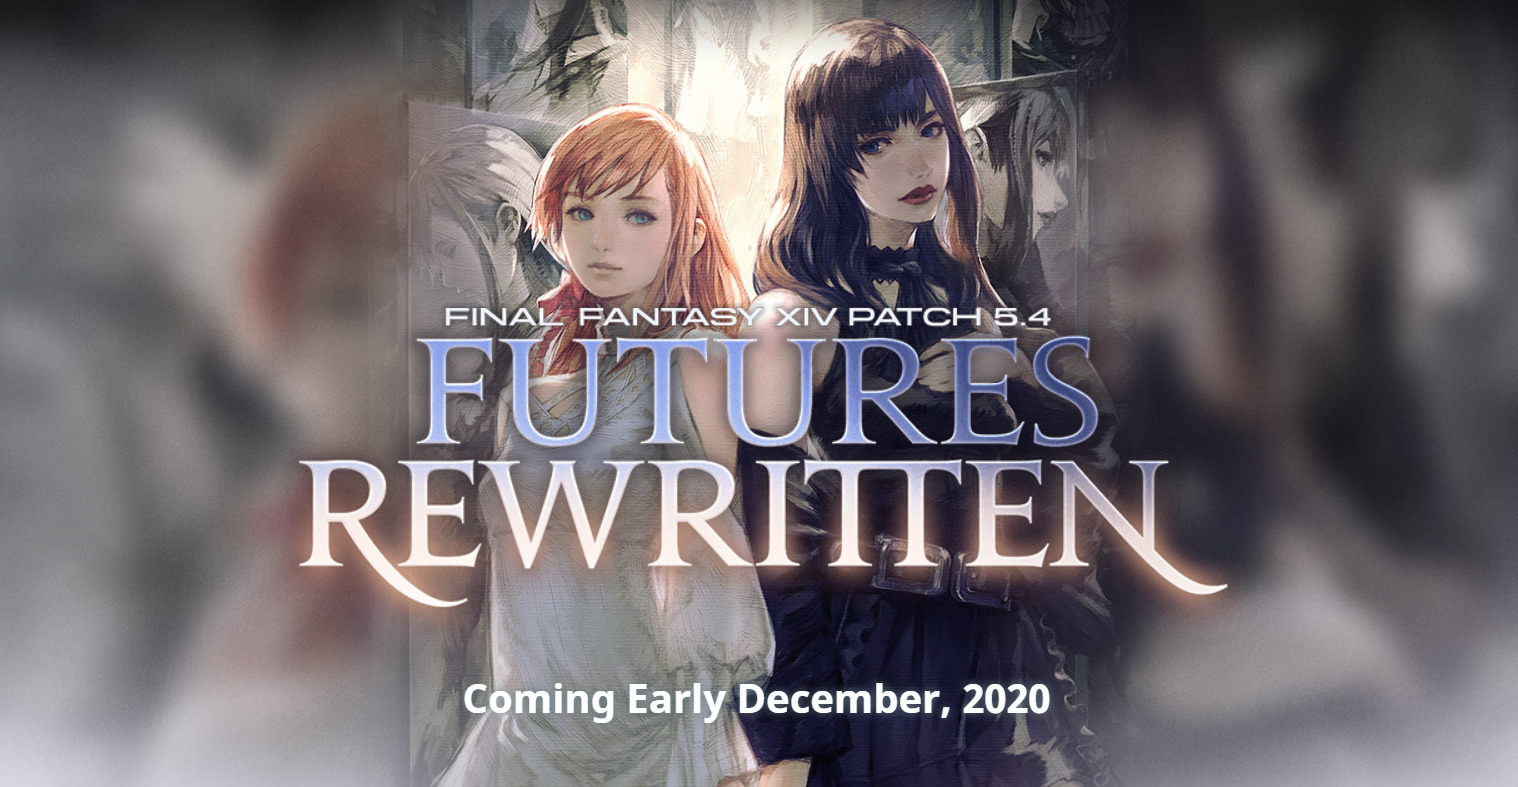 The Next Final Fantasy 14 Patch, Coming In Early December, Will Be Entitled Futures  Rewritten | Happy Gamer